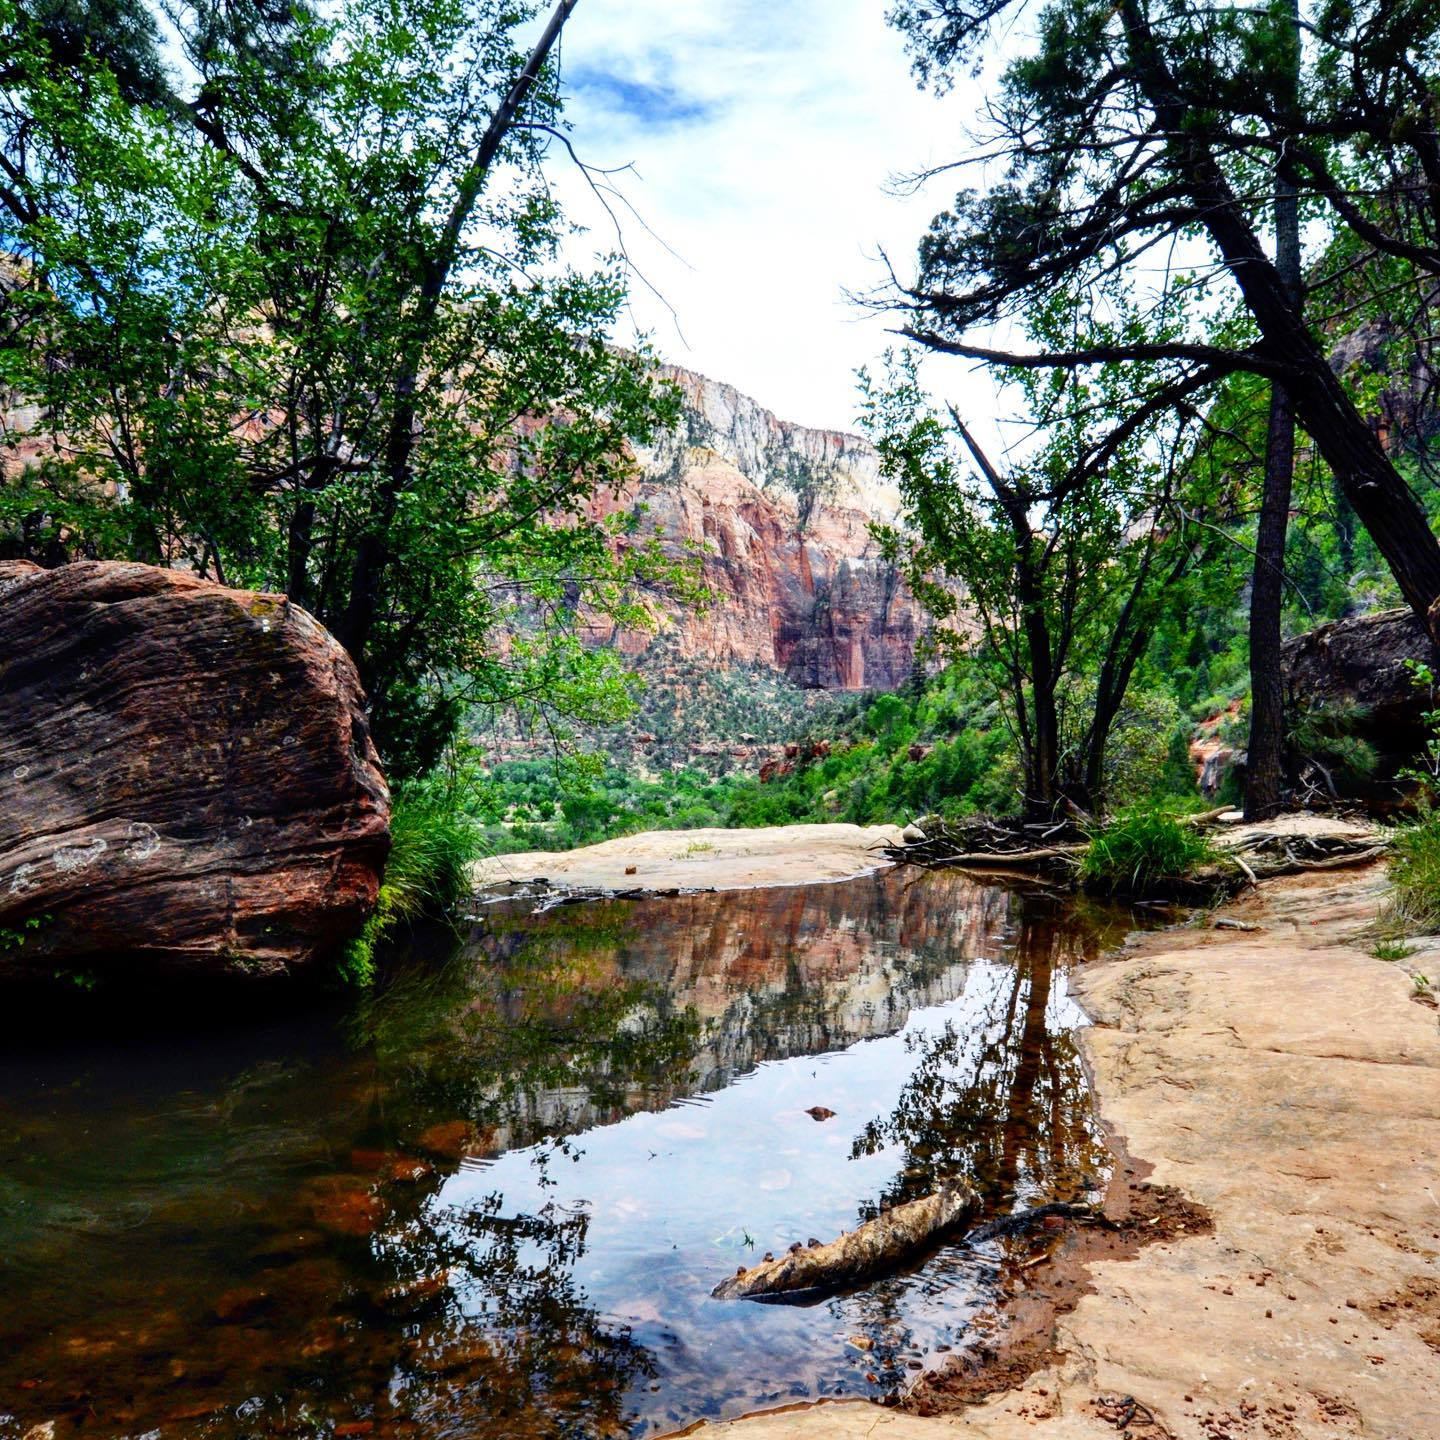 Emerald Pools, Zion NP, Utah Upper Emerald Pools Hiking Trail 🥾 #usa #usatravel #usatraveler #usanationalparks #zionnationalpark #roadtrip #roadtripusa #travelphotography #travelgram #emeraldpool #hikingzion #hikingadventures #nature #naturephotography #naturelovers #natur #naturfotografie #reisefotografie #usareise #travelblog #travelblogger #reiseblog #reiseblogger #reiselust #amerikareizen #reisenmachtglücklich